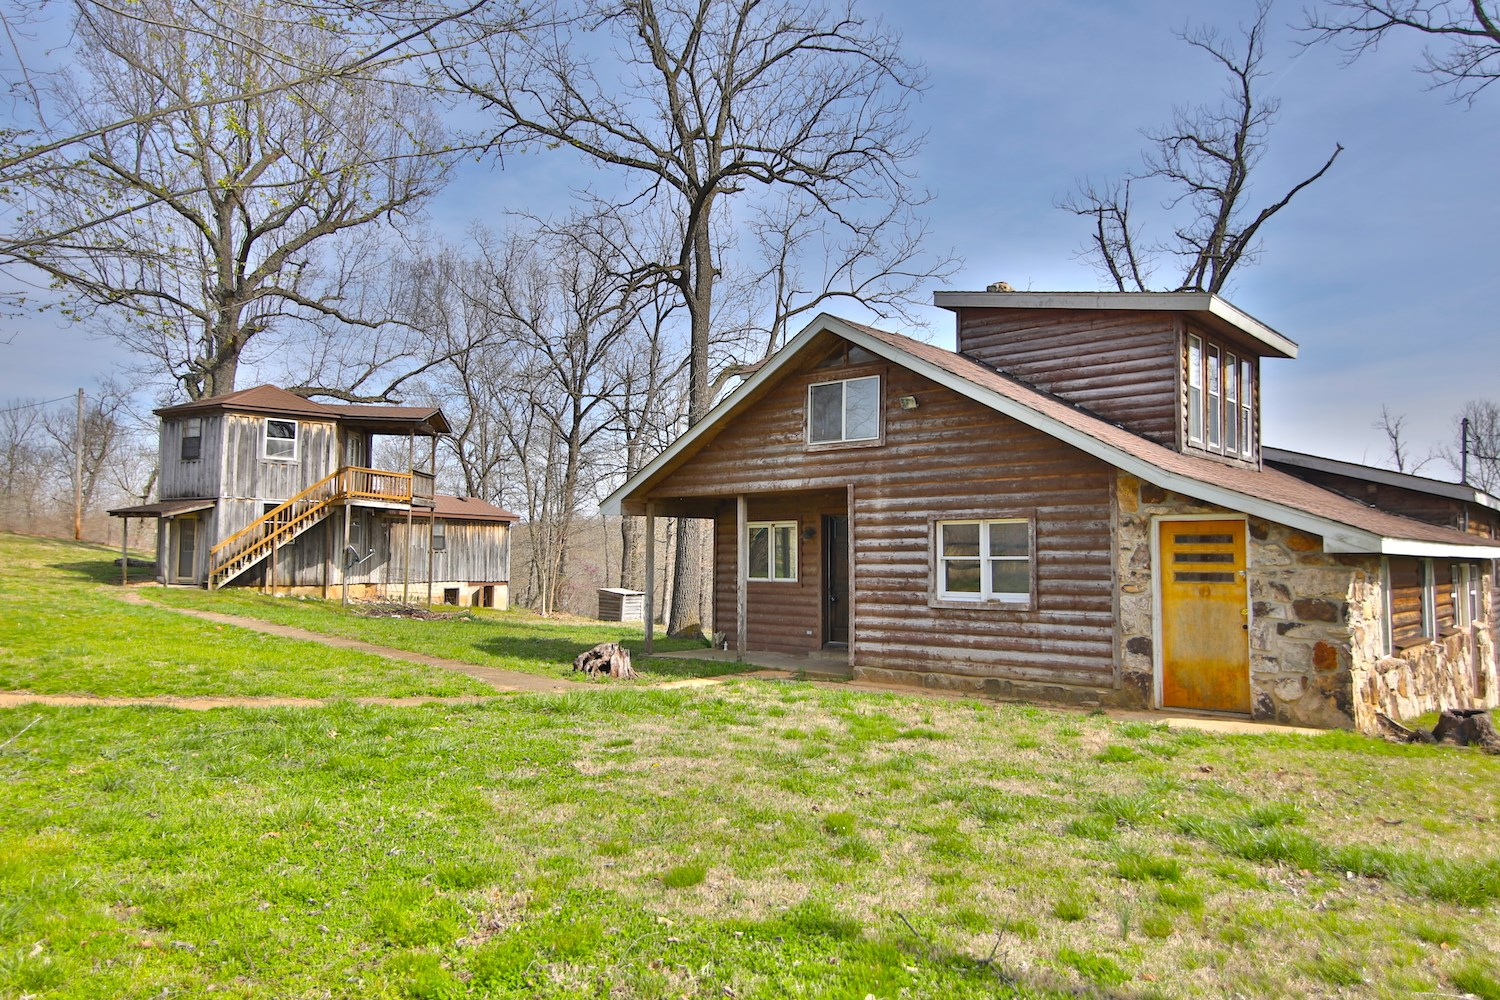 2 Homes for Sale In Mammoth Spring, Arkansas